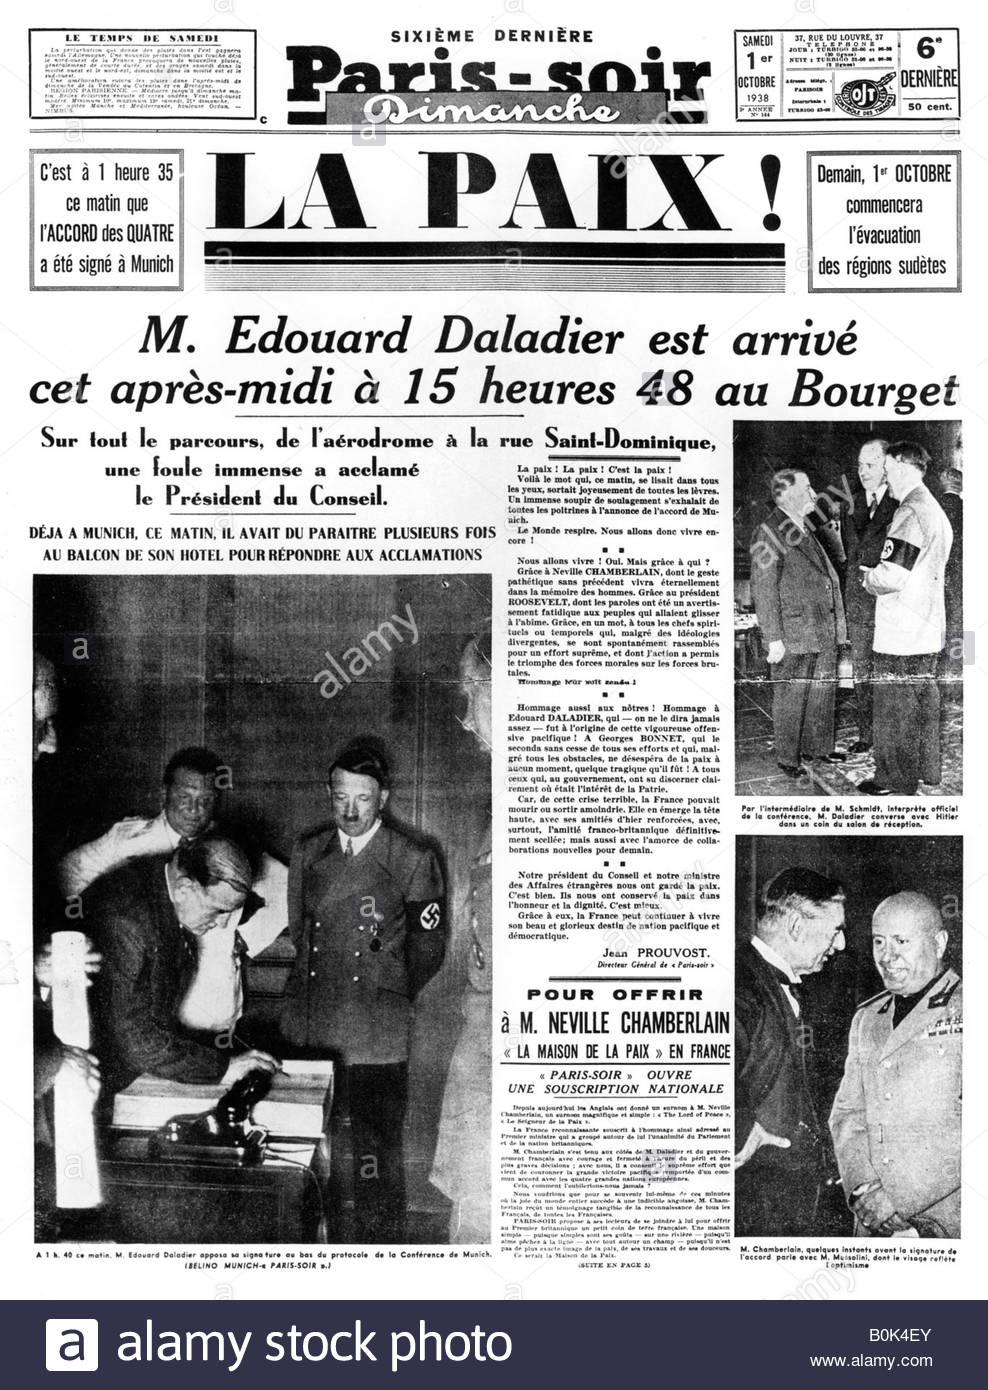 Peace!, front page of 'Paris-soir' newspaper, 1 October 1938. - Stock Image